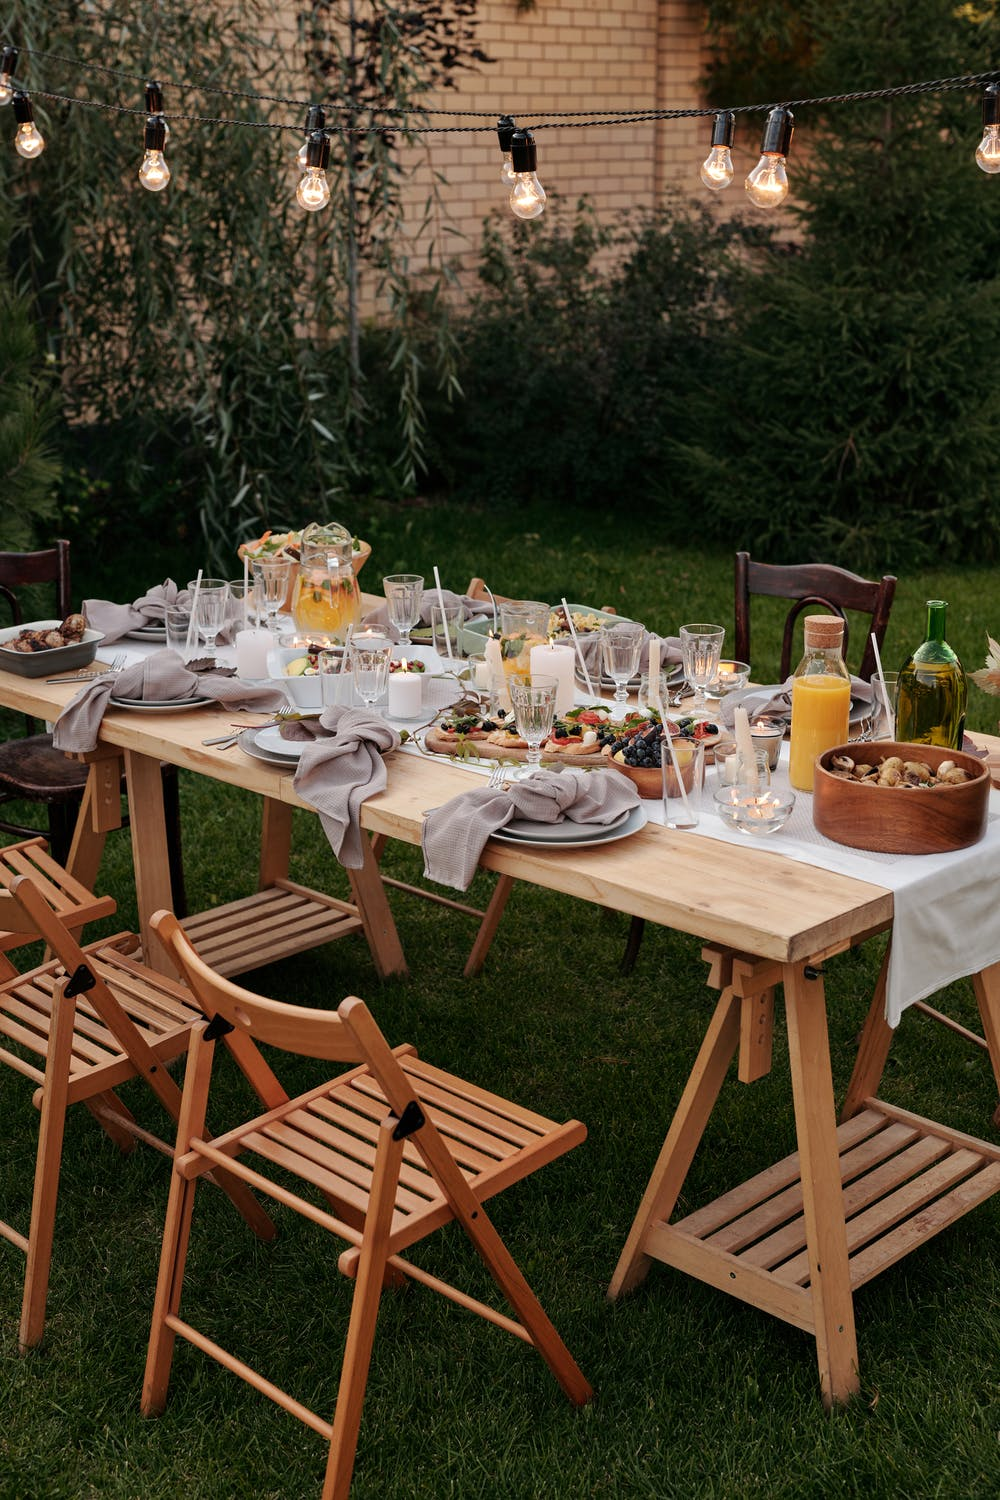 How to Set Up for Your Next Dinner Party